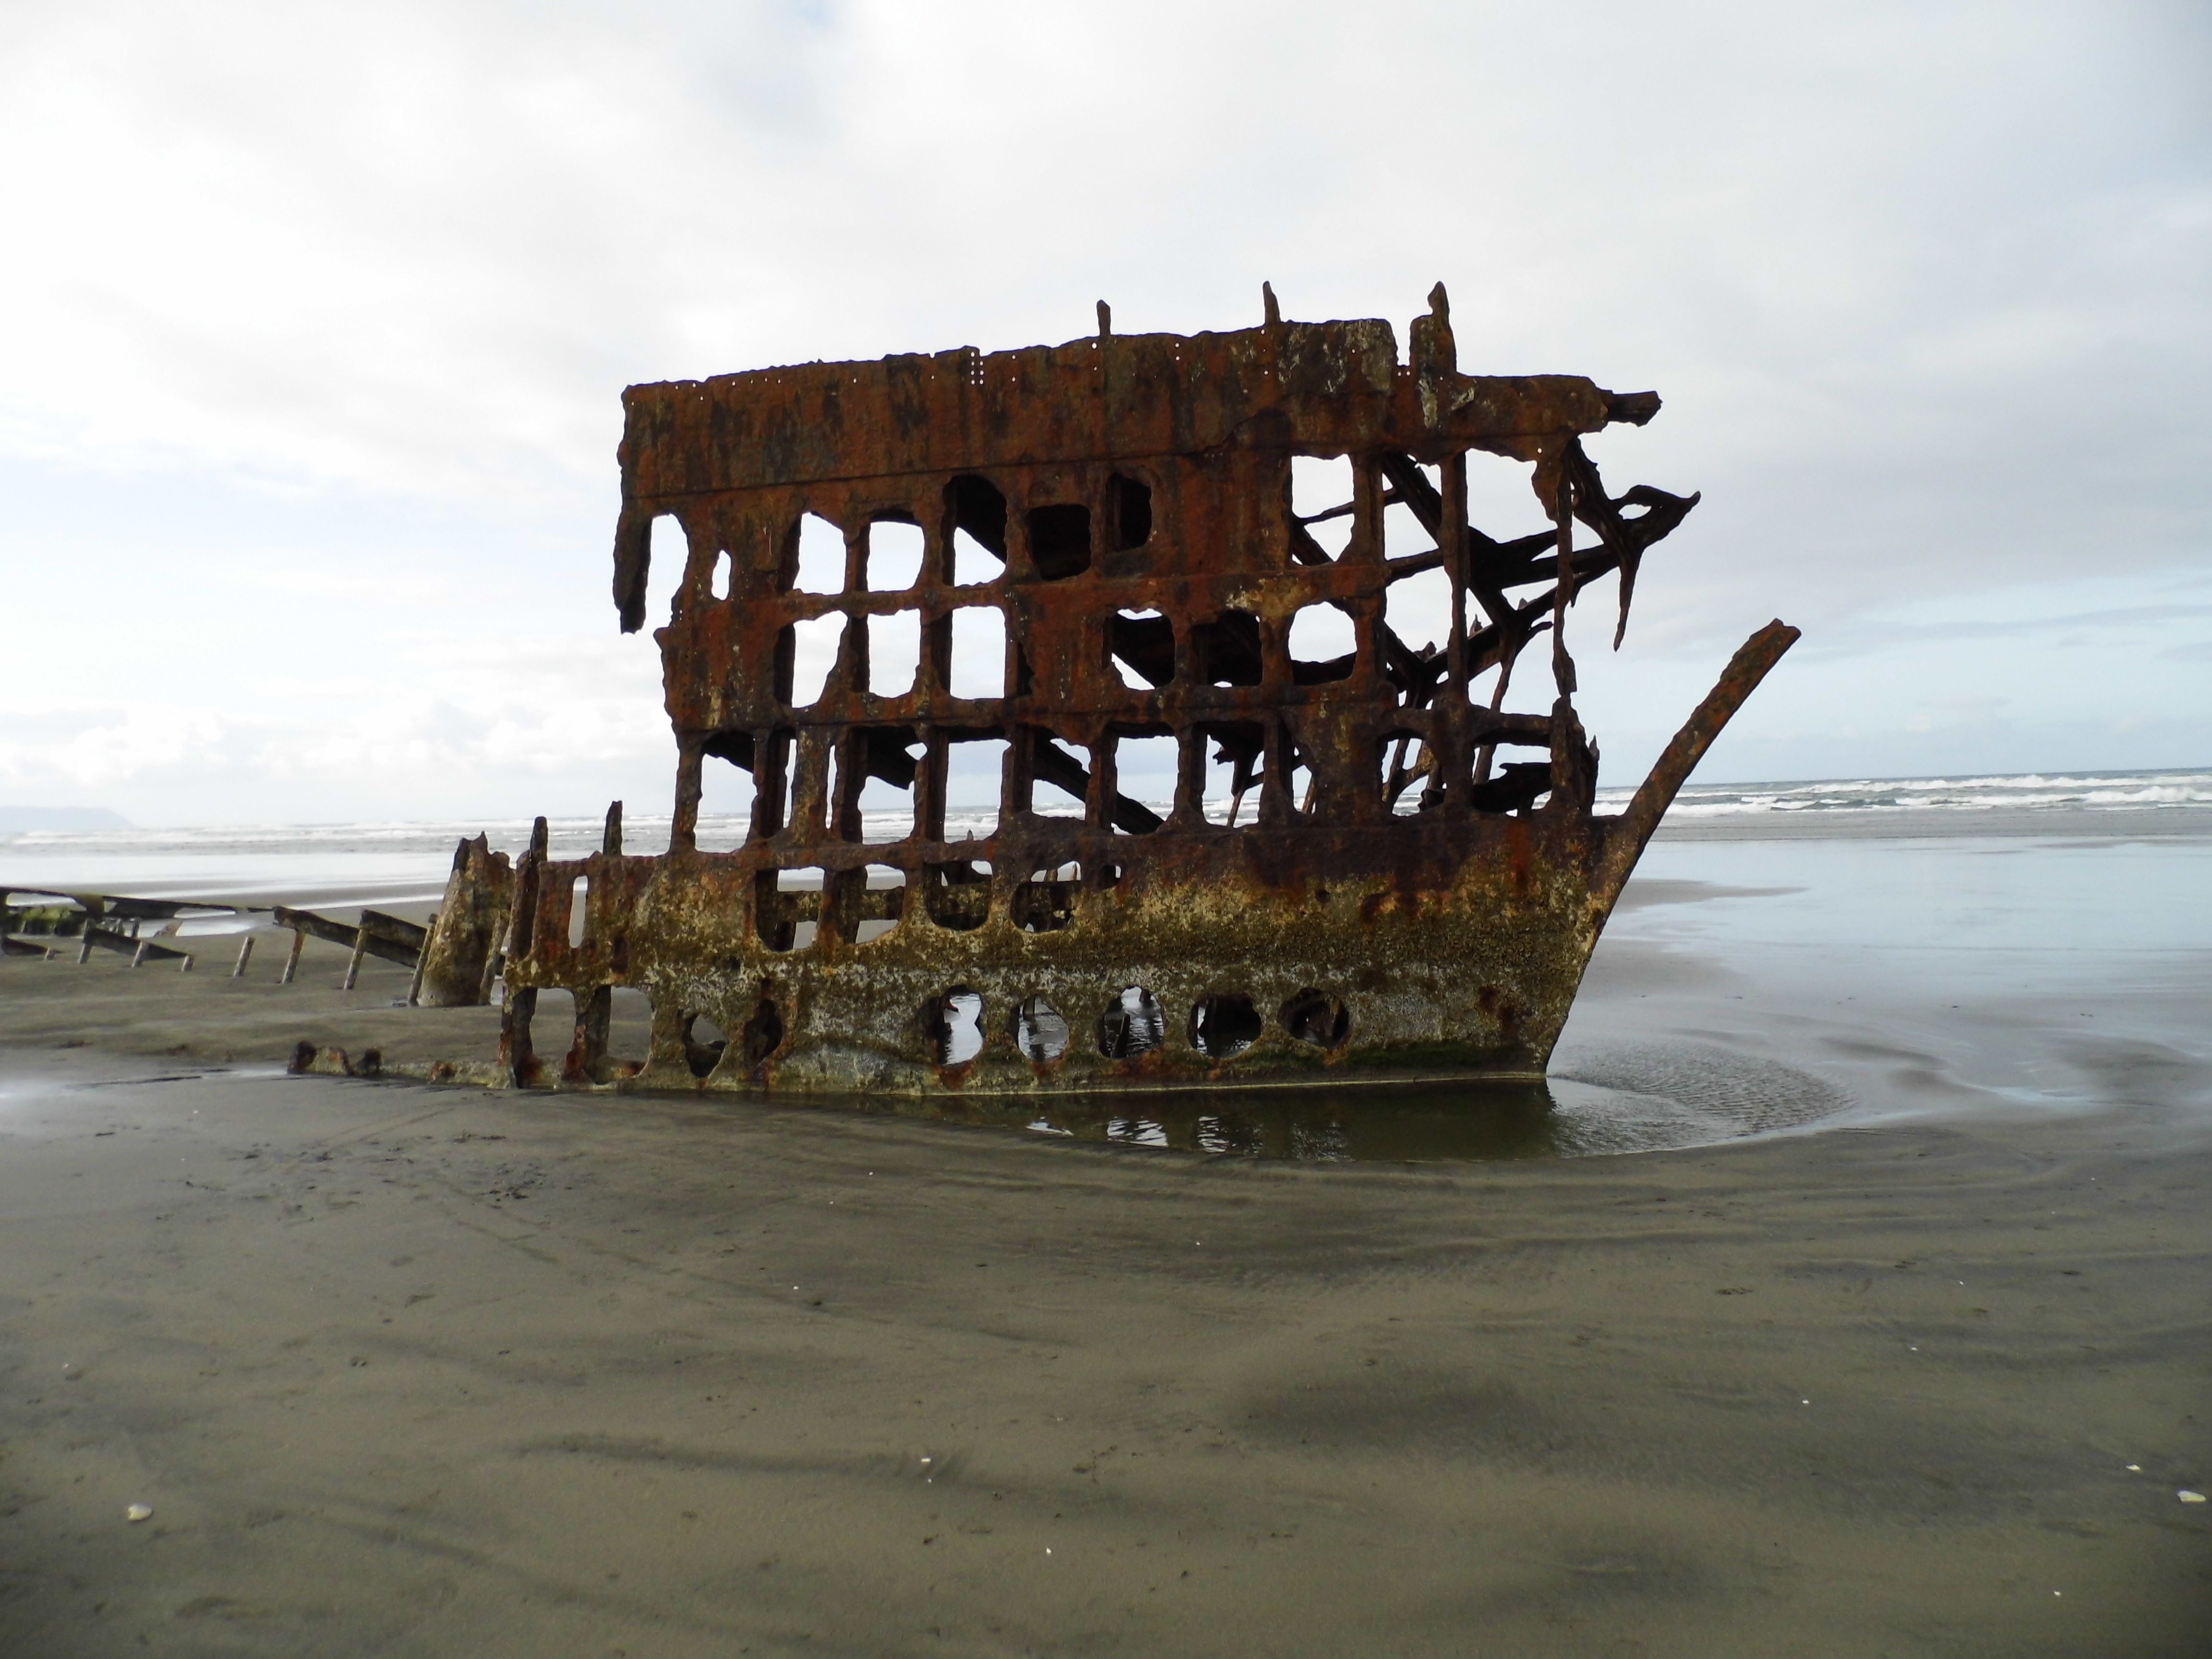 The Wreck of the Peter Iredale (With images) Oregon